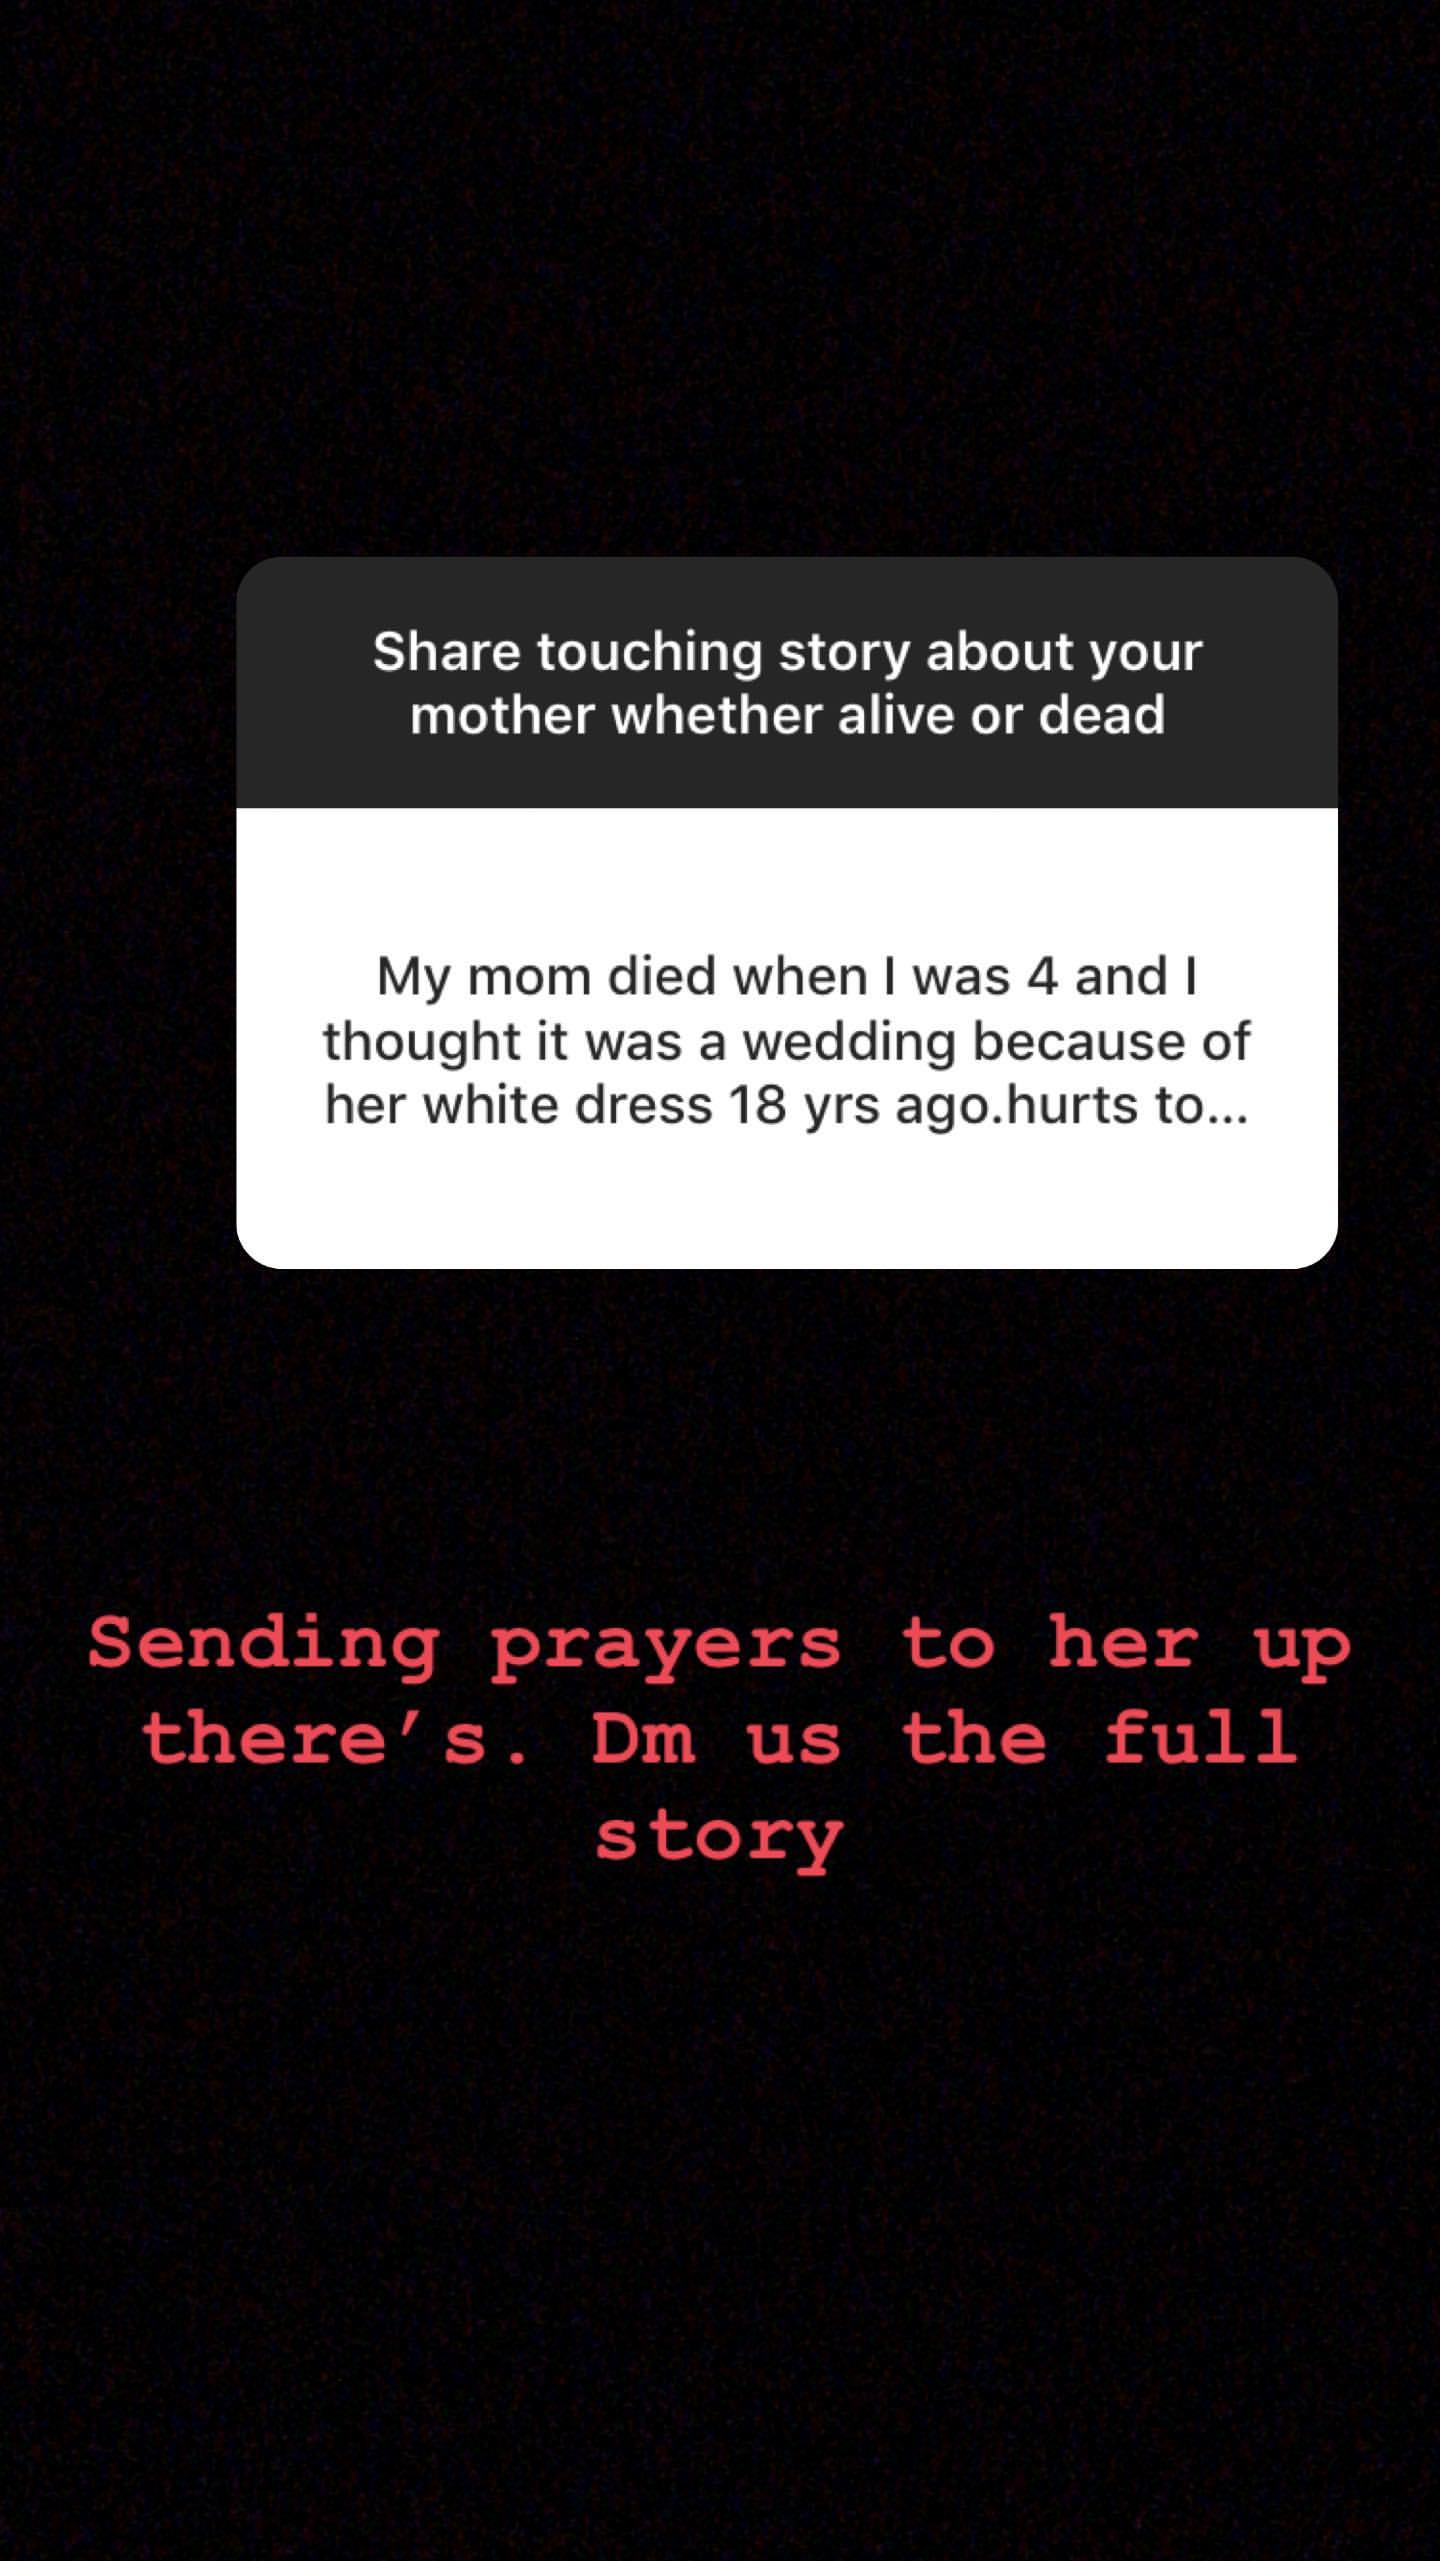 58454030 113320586548283 2217451839539822021 n - Tear-jerking! Mpasho fans break down sharing touching stories about their mothers